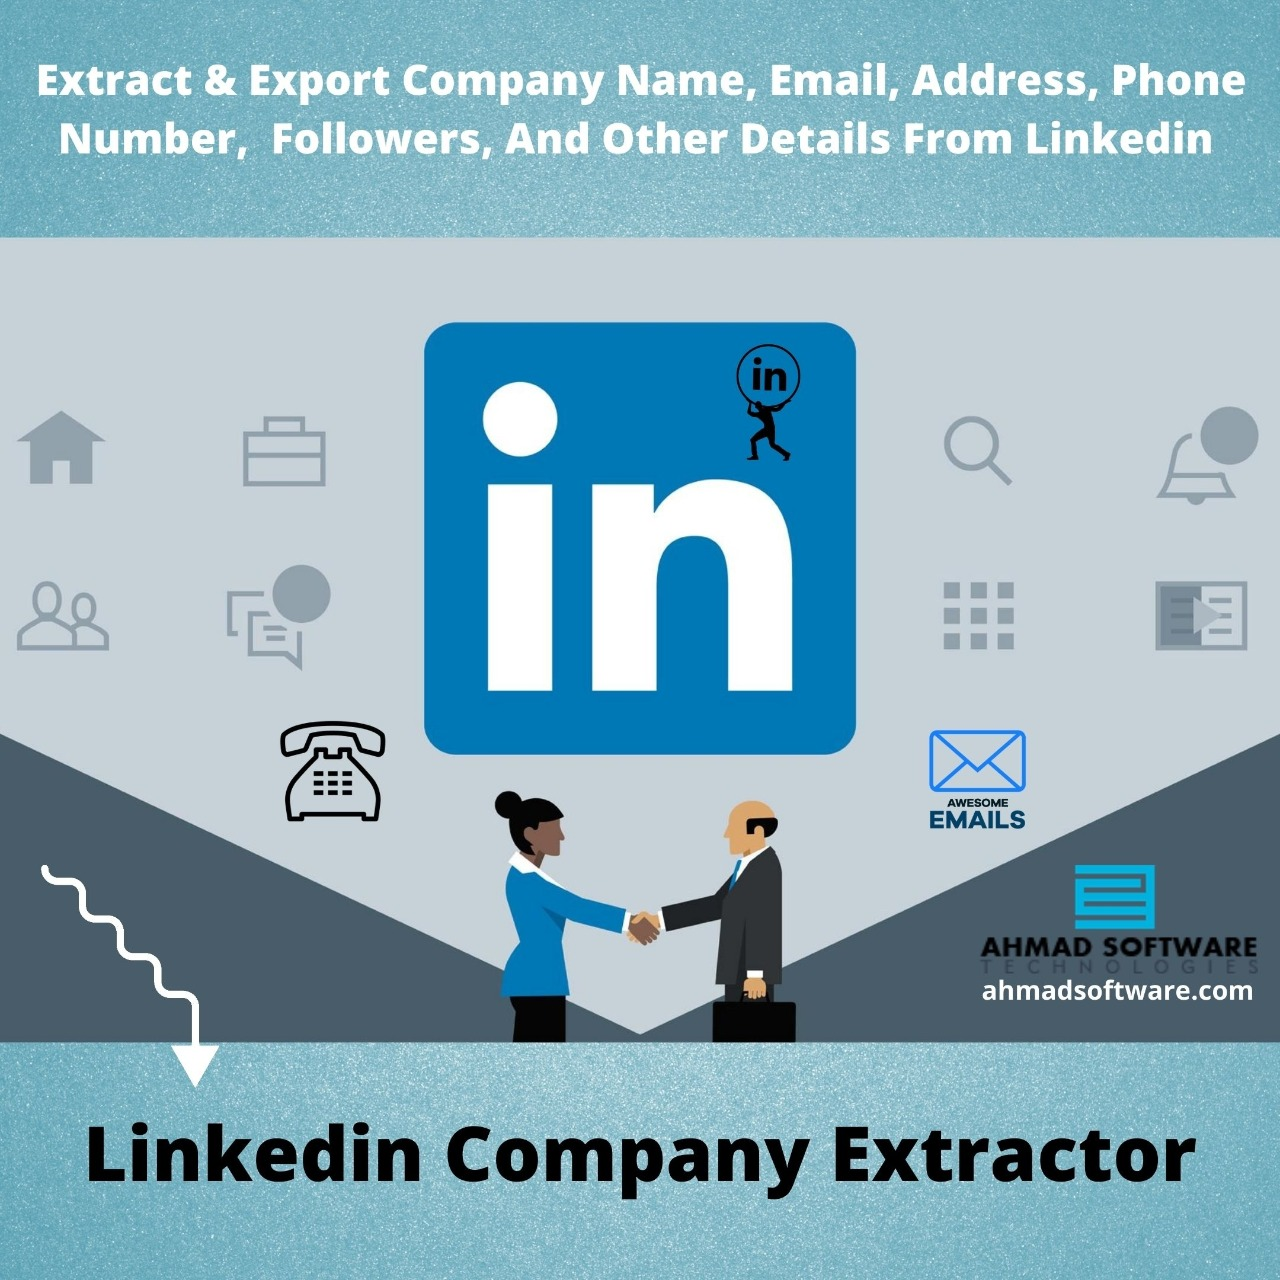 Extract Business Name, Email, Phone Number, And Other Business Details From Linkedin